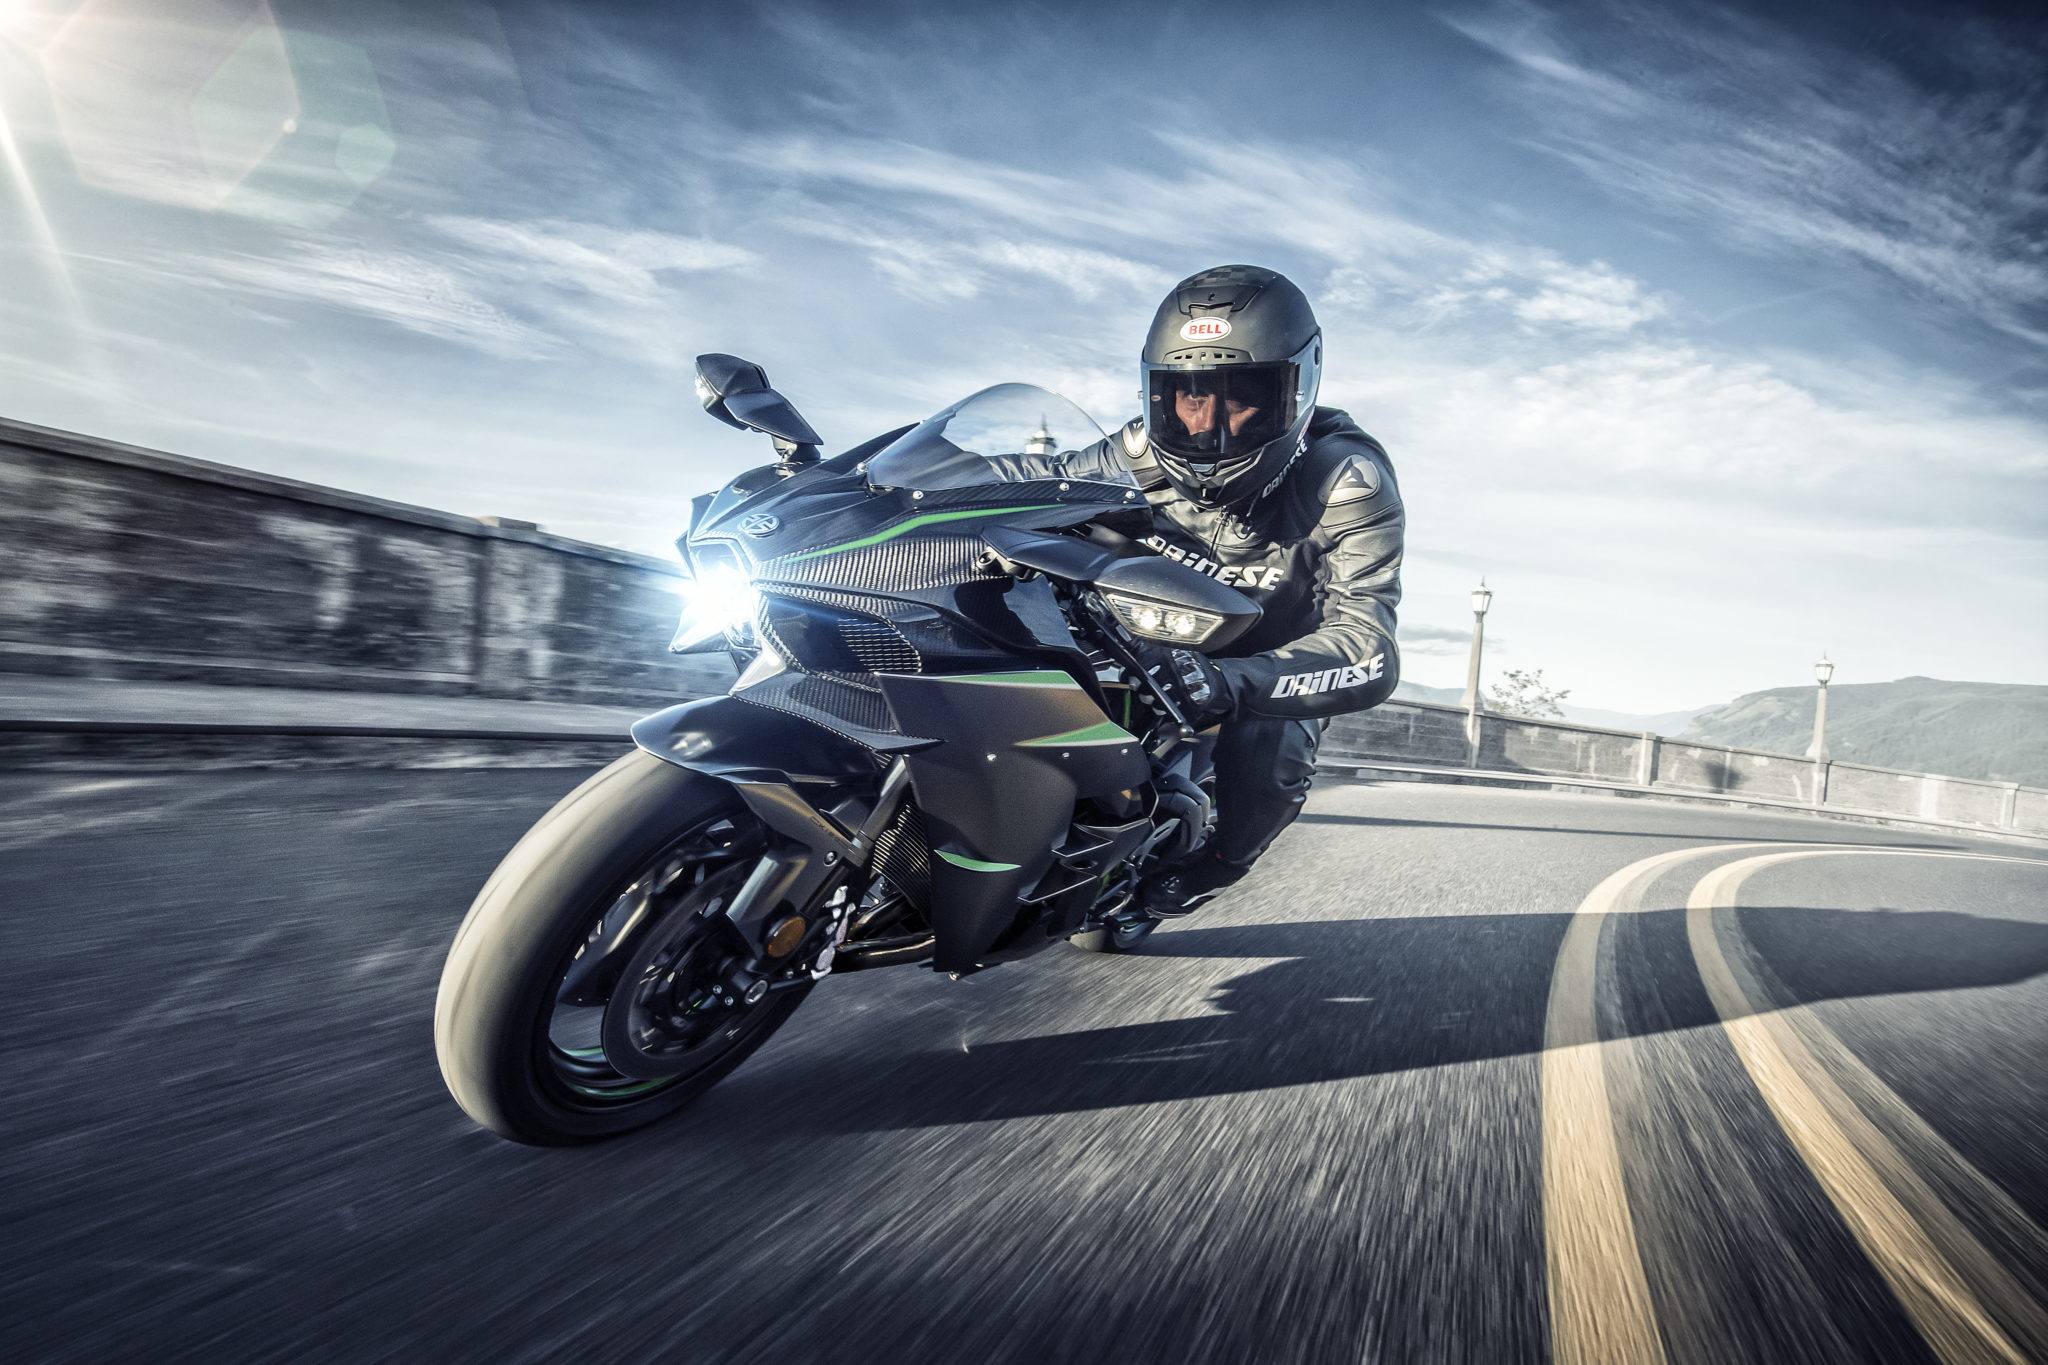 New 2019 Kawasaki Ninja H2 hits 230 hp!